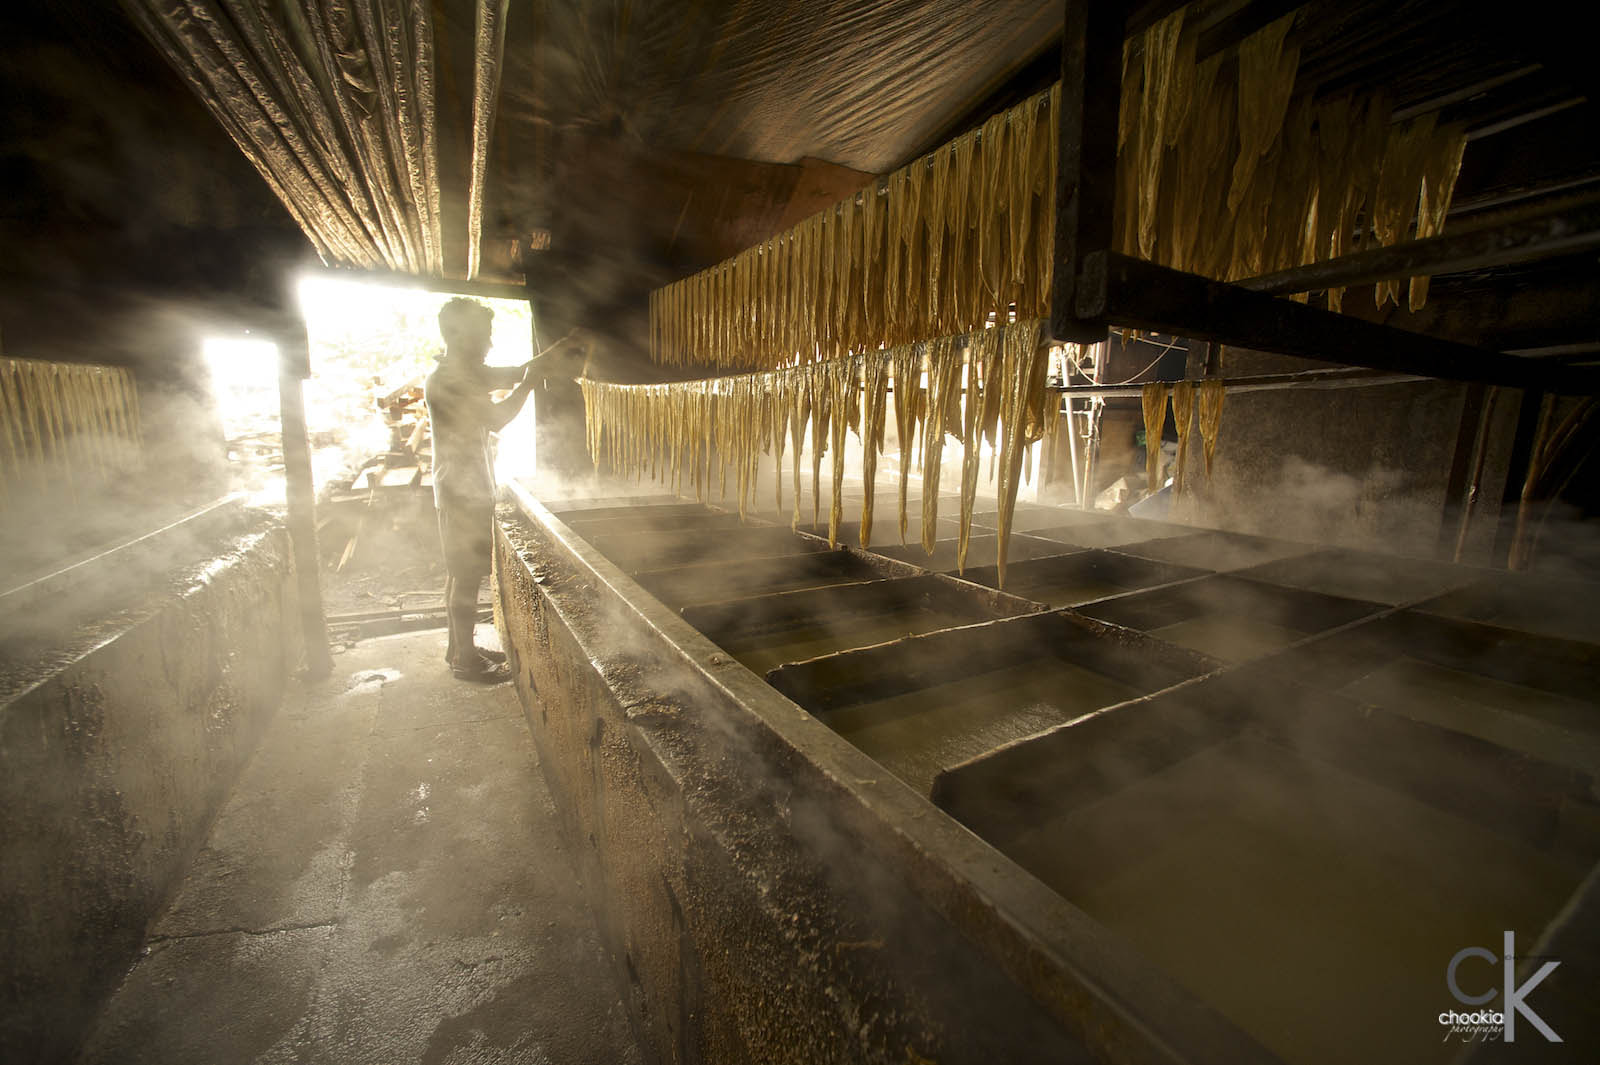 Photograph Dried Tofu / Tofu skin factory by CK NG on 500px